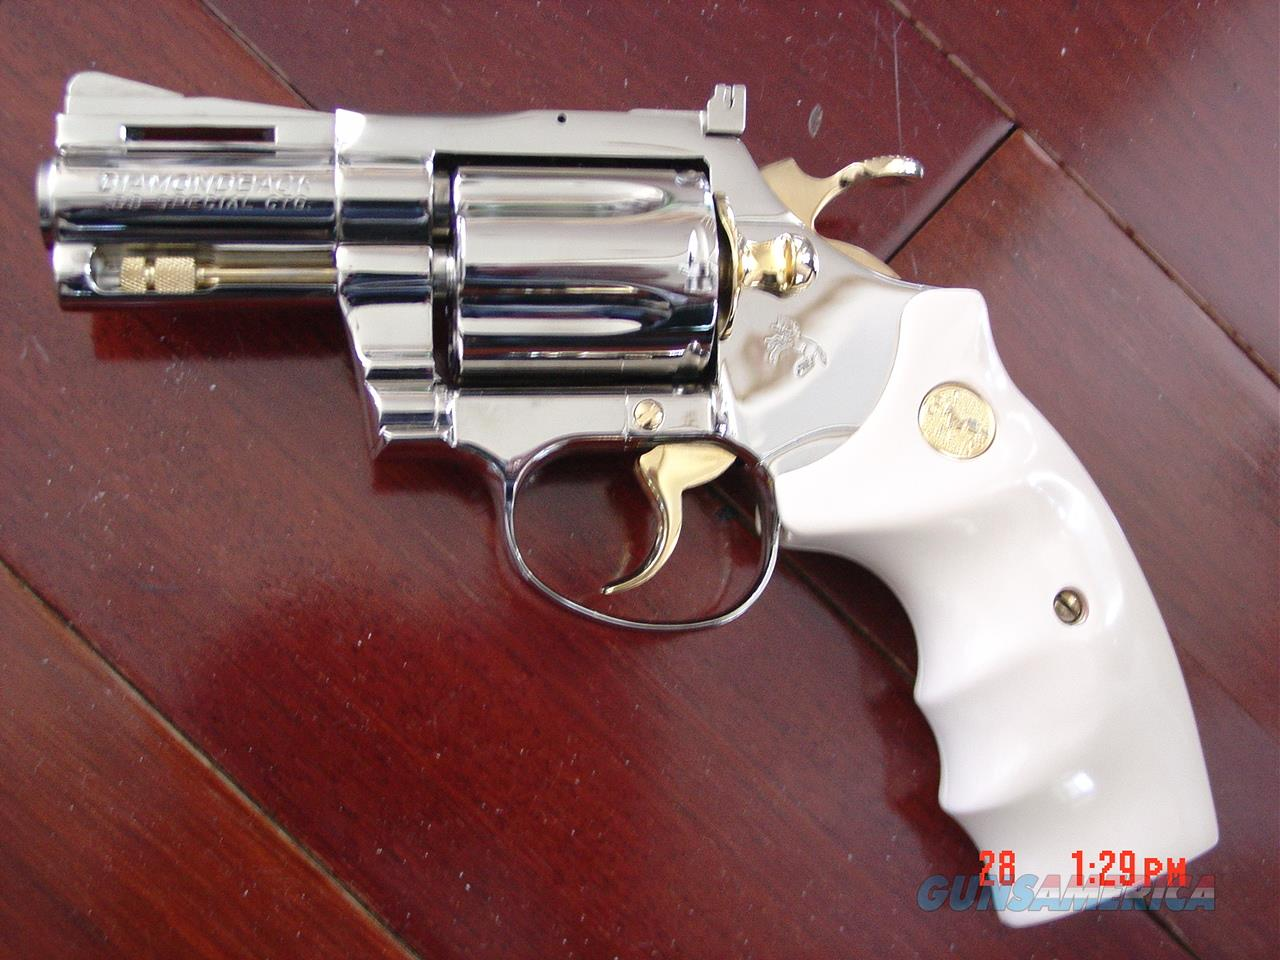 "Colt Diamondback,2 1/2""barrel,38 spl,1978,fully refinished in bright mirror nickel with 24K gold accents,bonded ivory grips,awesome showpiece !!  Guns > Pistols > Colt Double Action Revolvers- Modern"